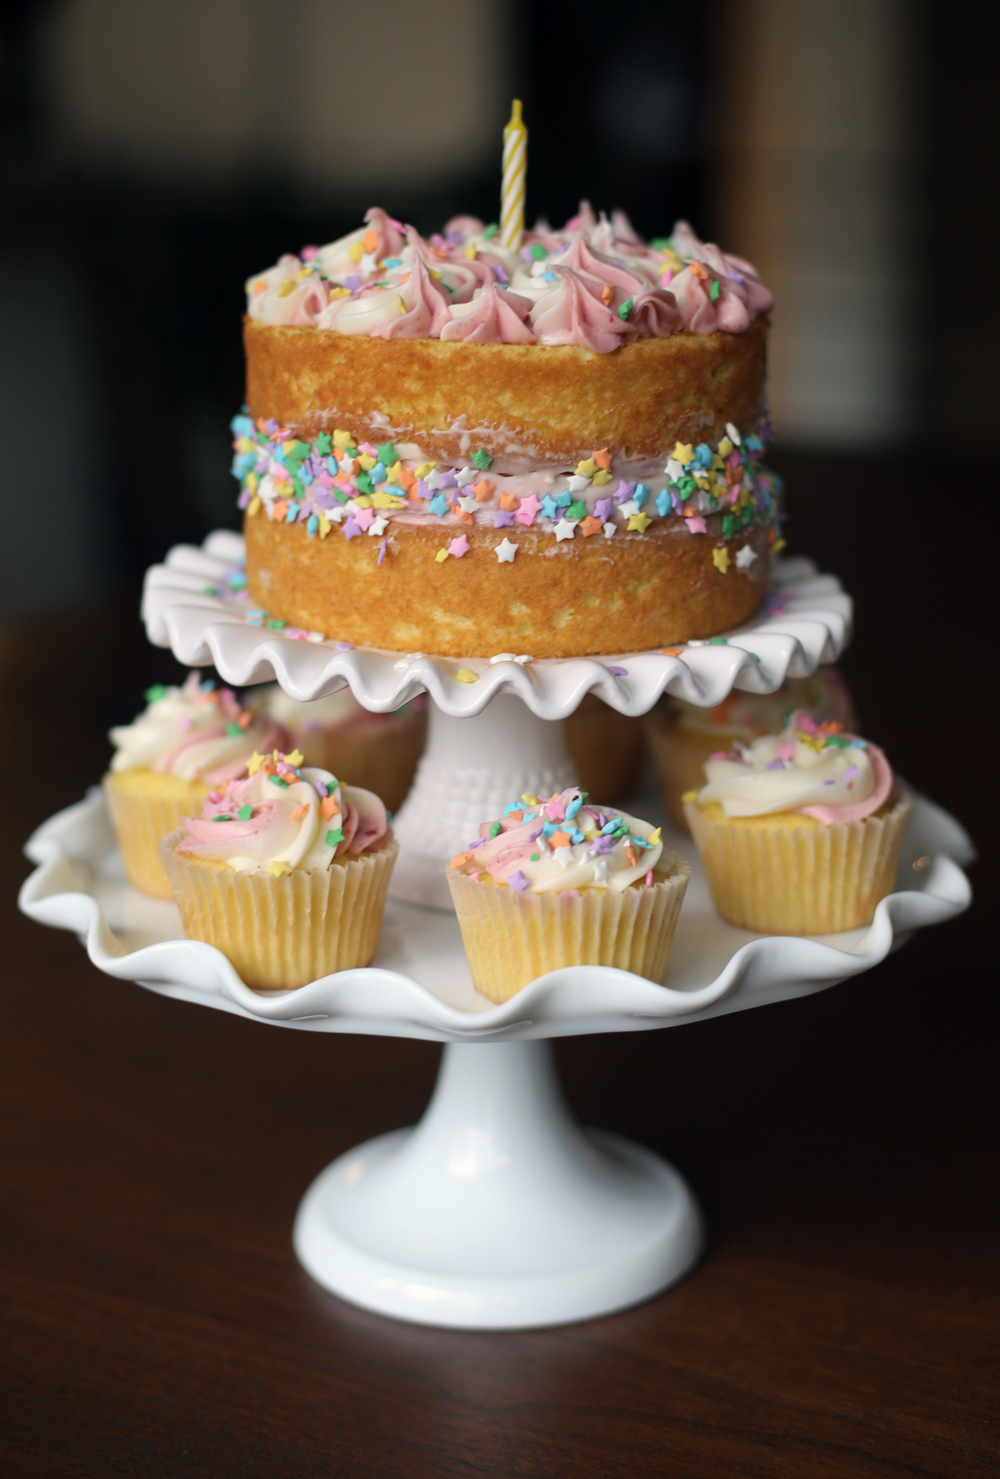 Jessica Bakes Lemon Cake with Strawberry Cream Cheese Frosting